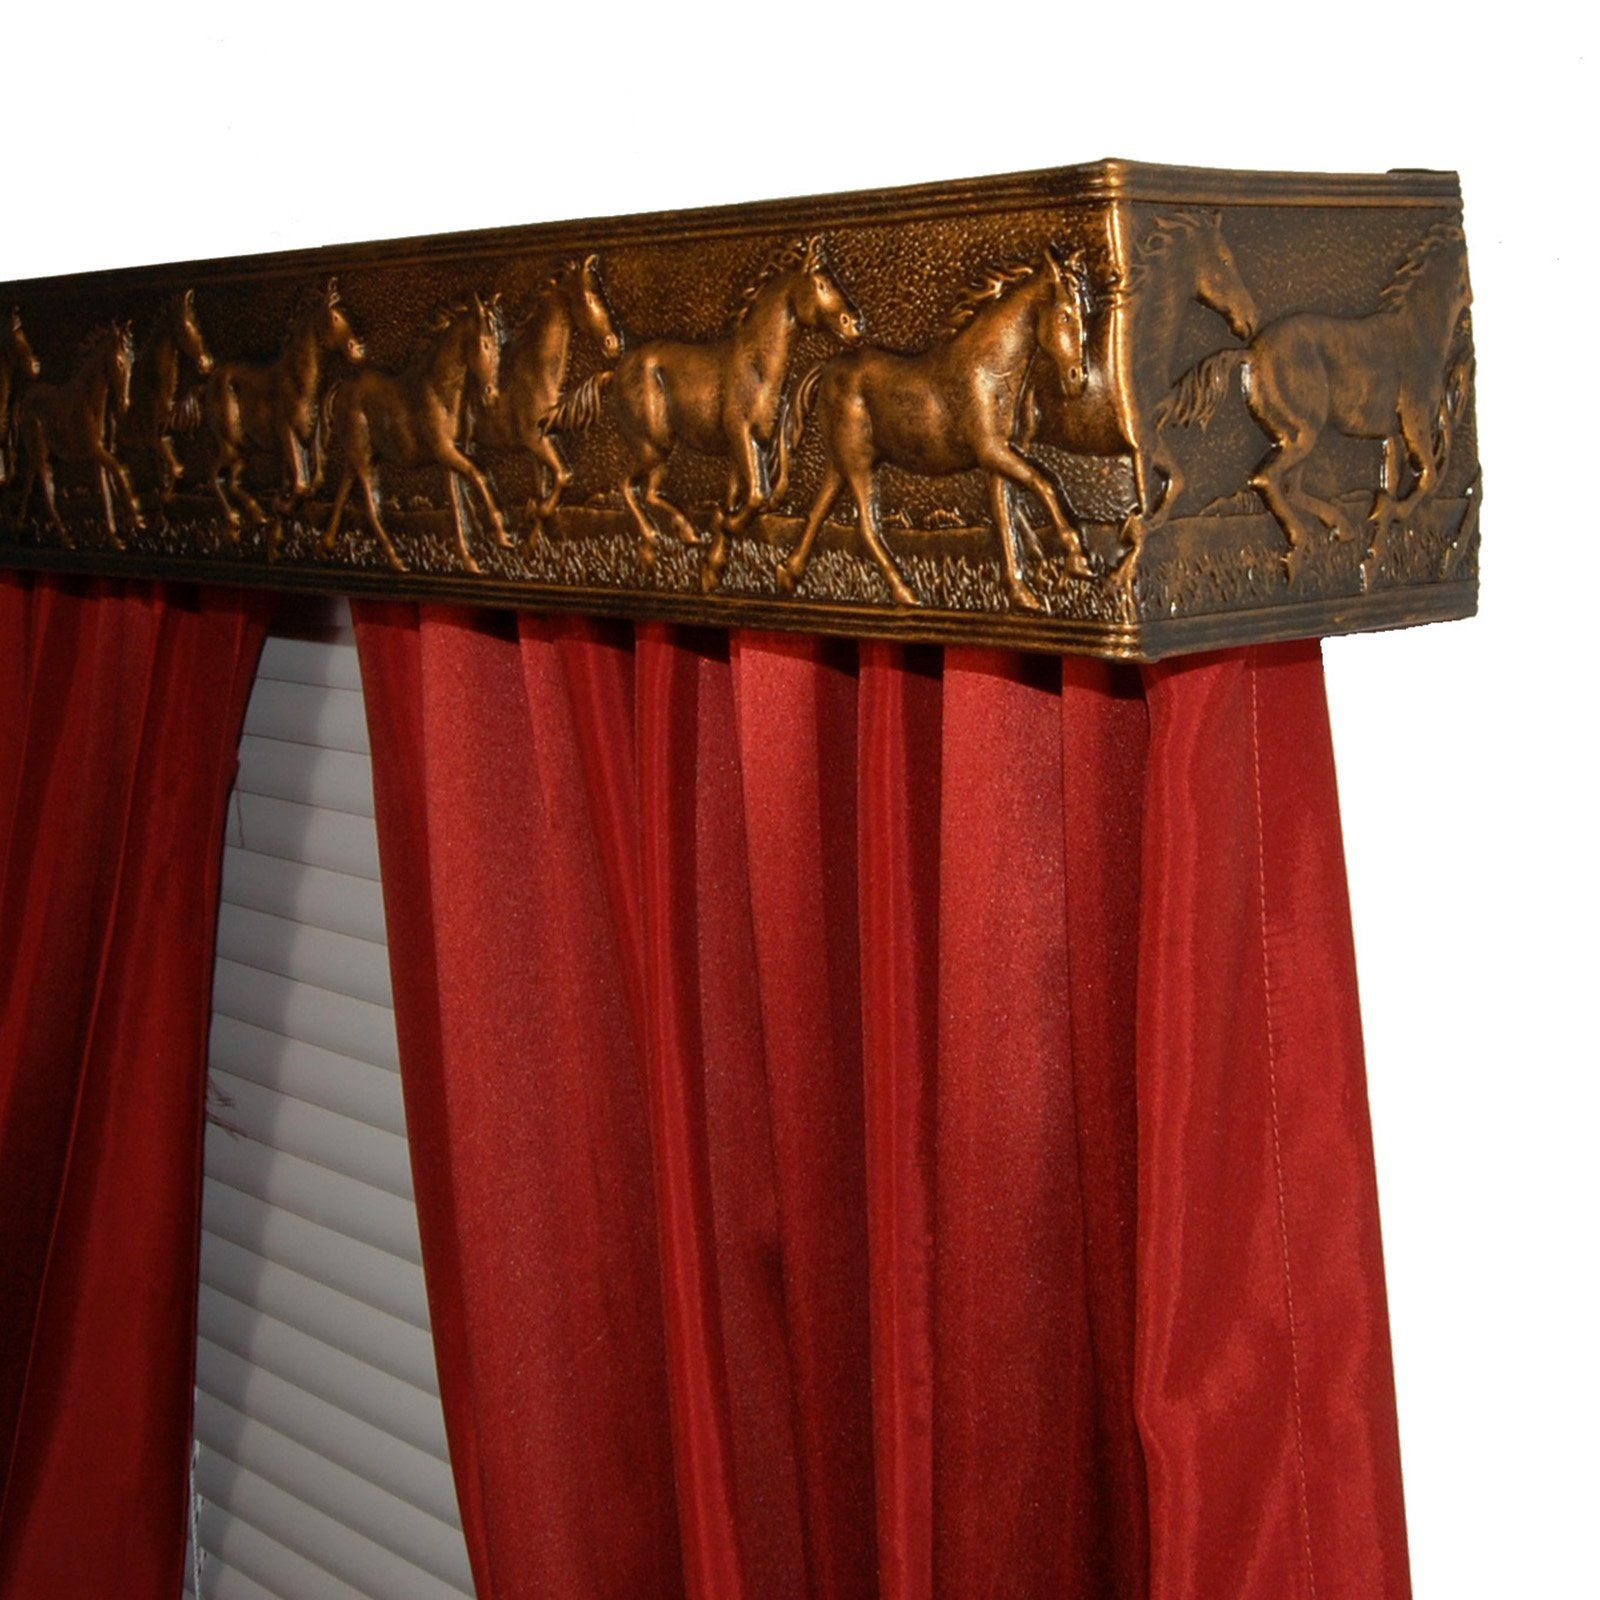 Bcl Wild Horses Curtain Rod Valance Set Make Window Treatments A